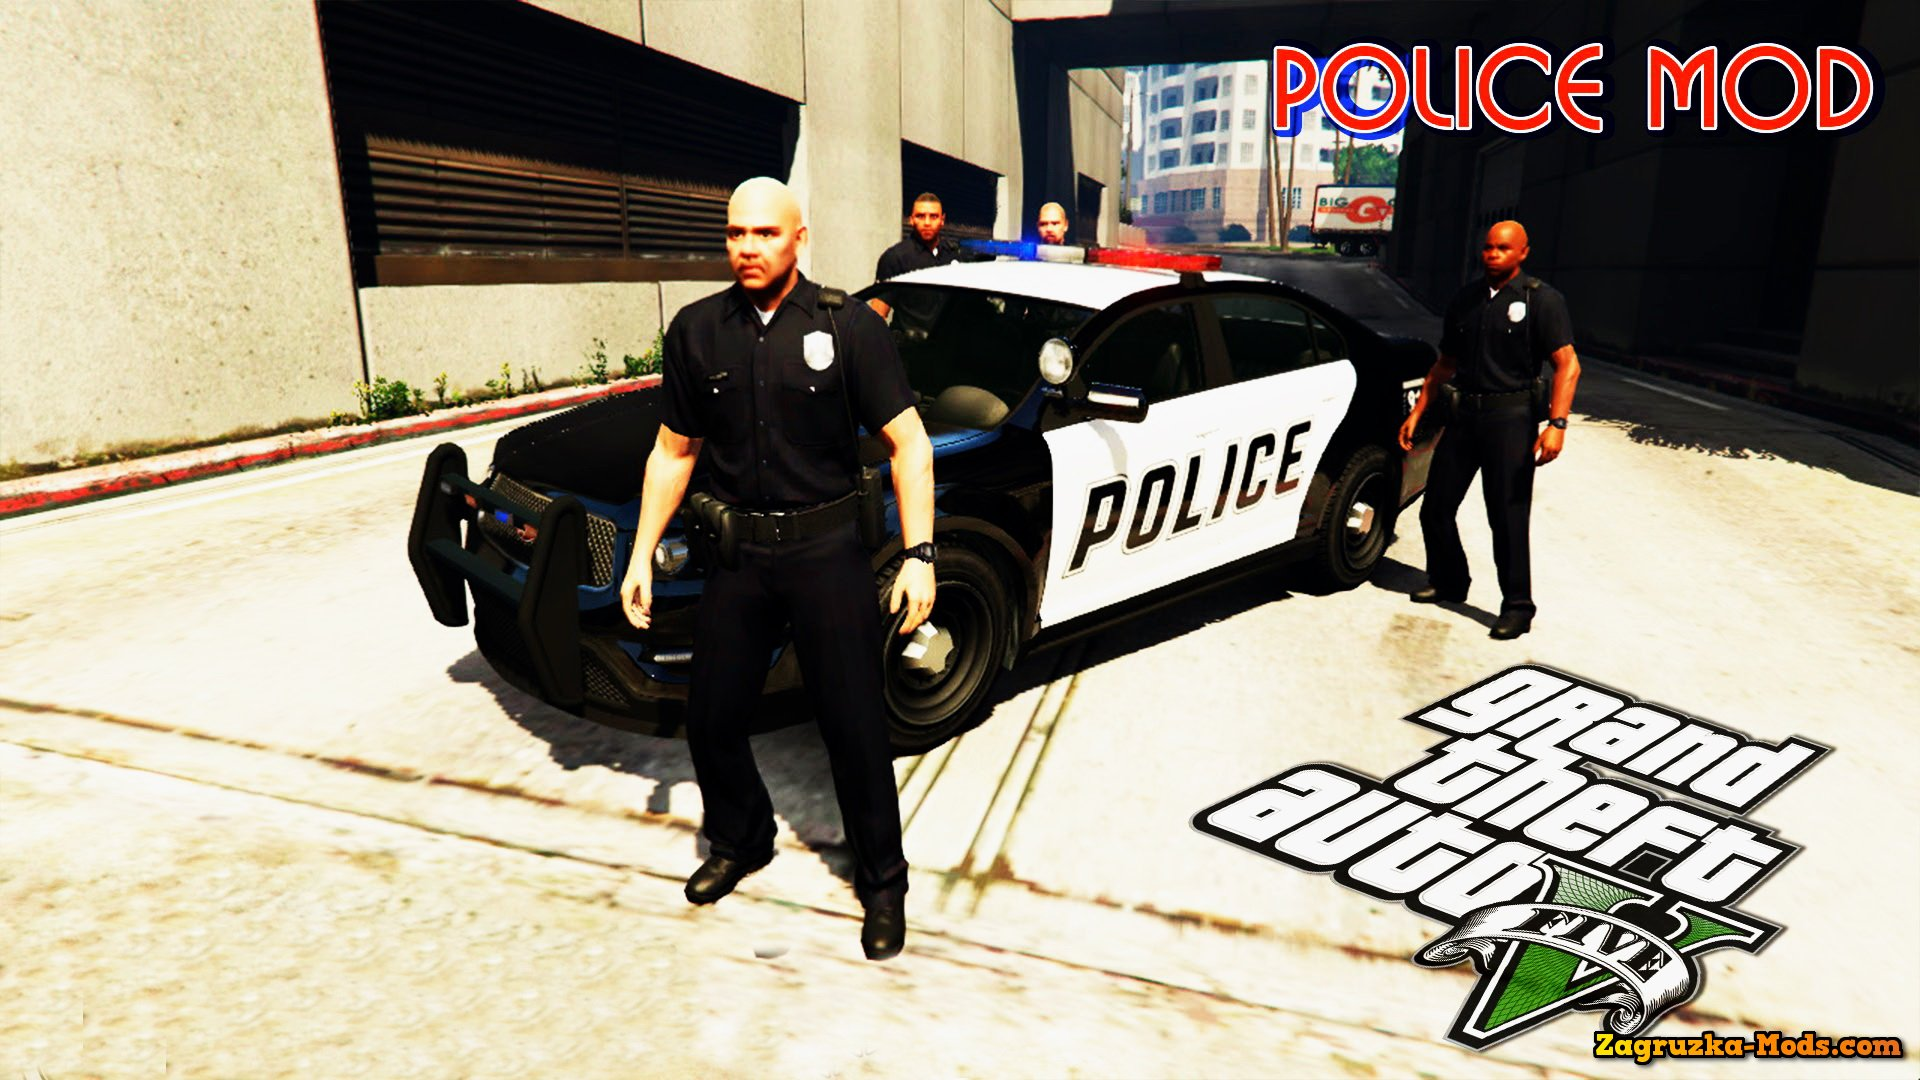 Overview of GTA V Police mode